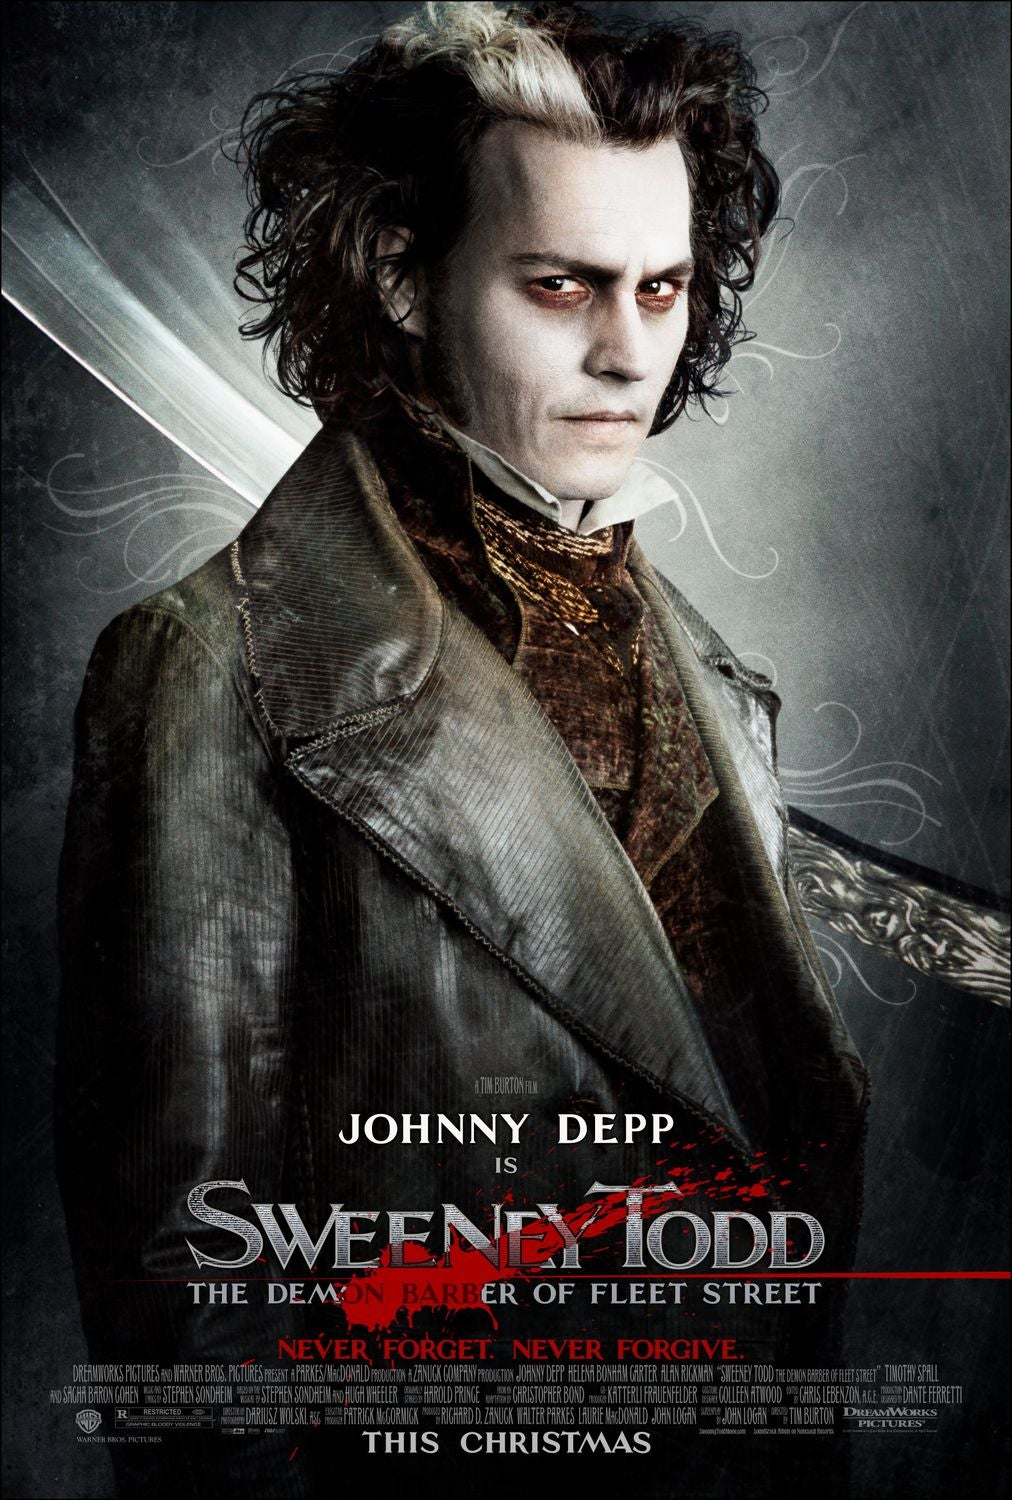 """sweeney todd the demon barber This dark 1979 tony award-winner for best musical features music and lyrics by stephen sondheim and is based on the 1973 play """"sweeney todd, the demon barber of fleet street"""" by christopher bond."""